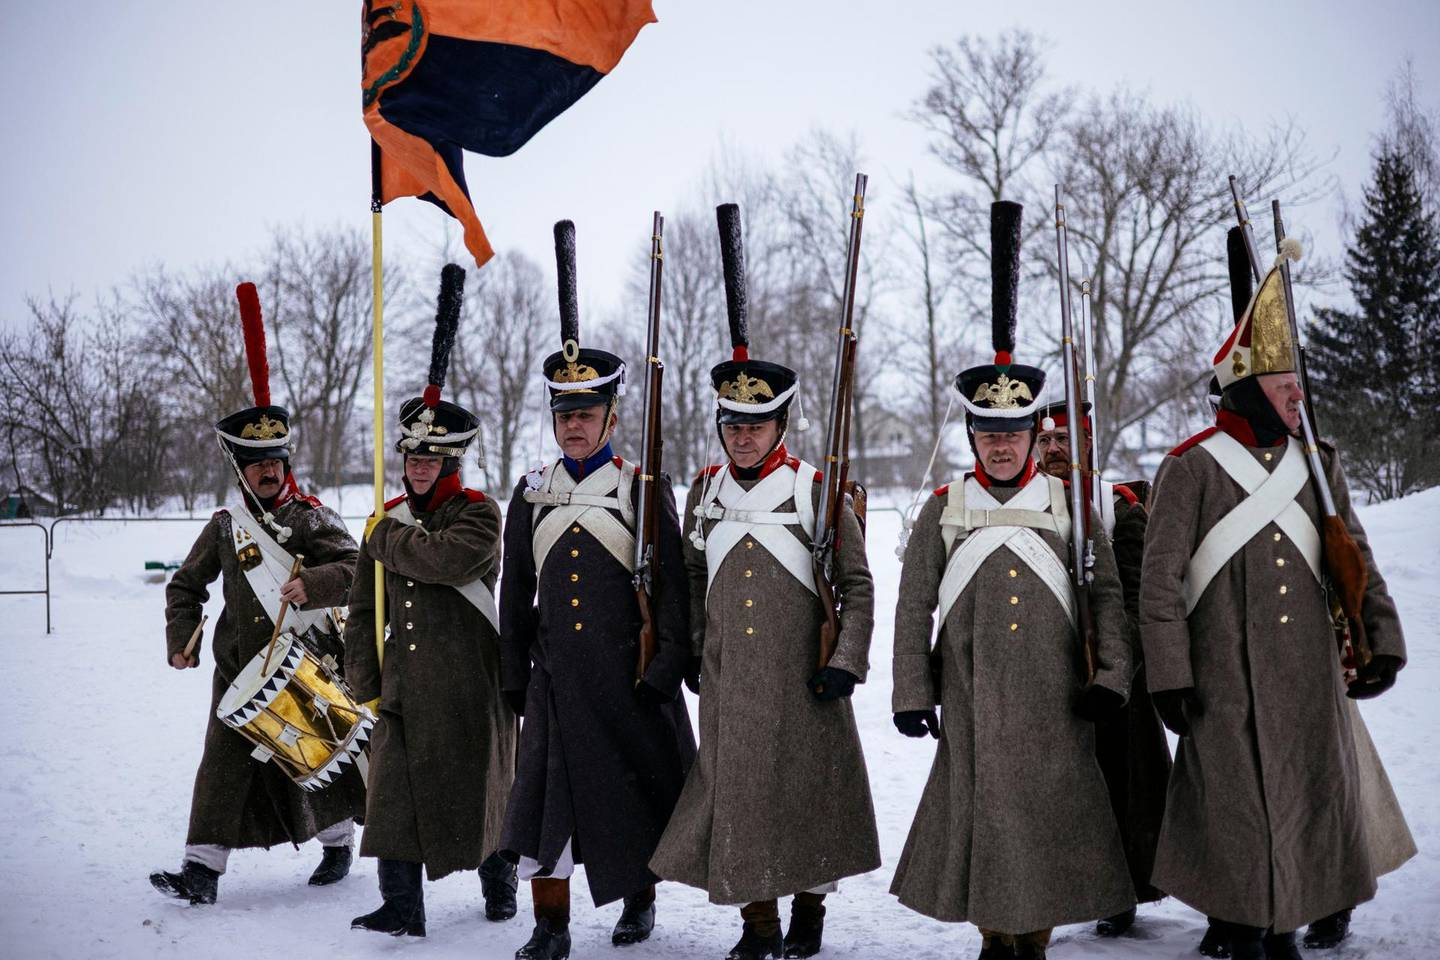 Re-enactors in period uniforms attend a burial ceremony of remains of Russian and French soldiers during a burial ceremony in the western town of Vyazma on February 13, 2021. Officials and descendants of 19th-century Russian and French military leaders gathered for a windswept ceremony in the western town of Vyazma to re-bury the remains of 126 people killed in one of the bloodiest battles of Napoleon's Russian campaign. / AFP / Dimitar DILKOFF